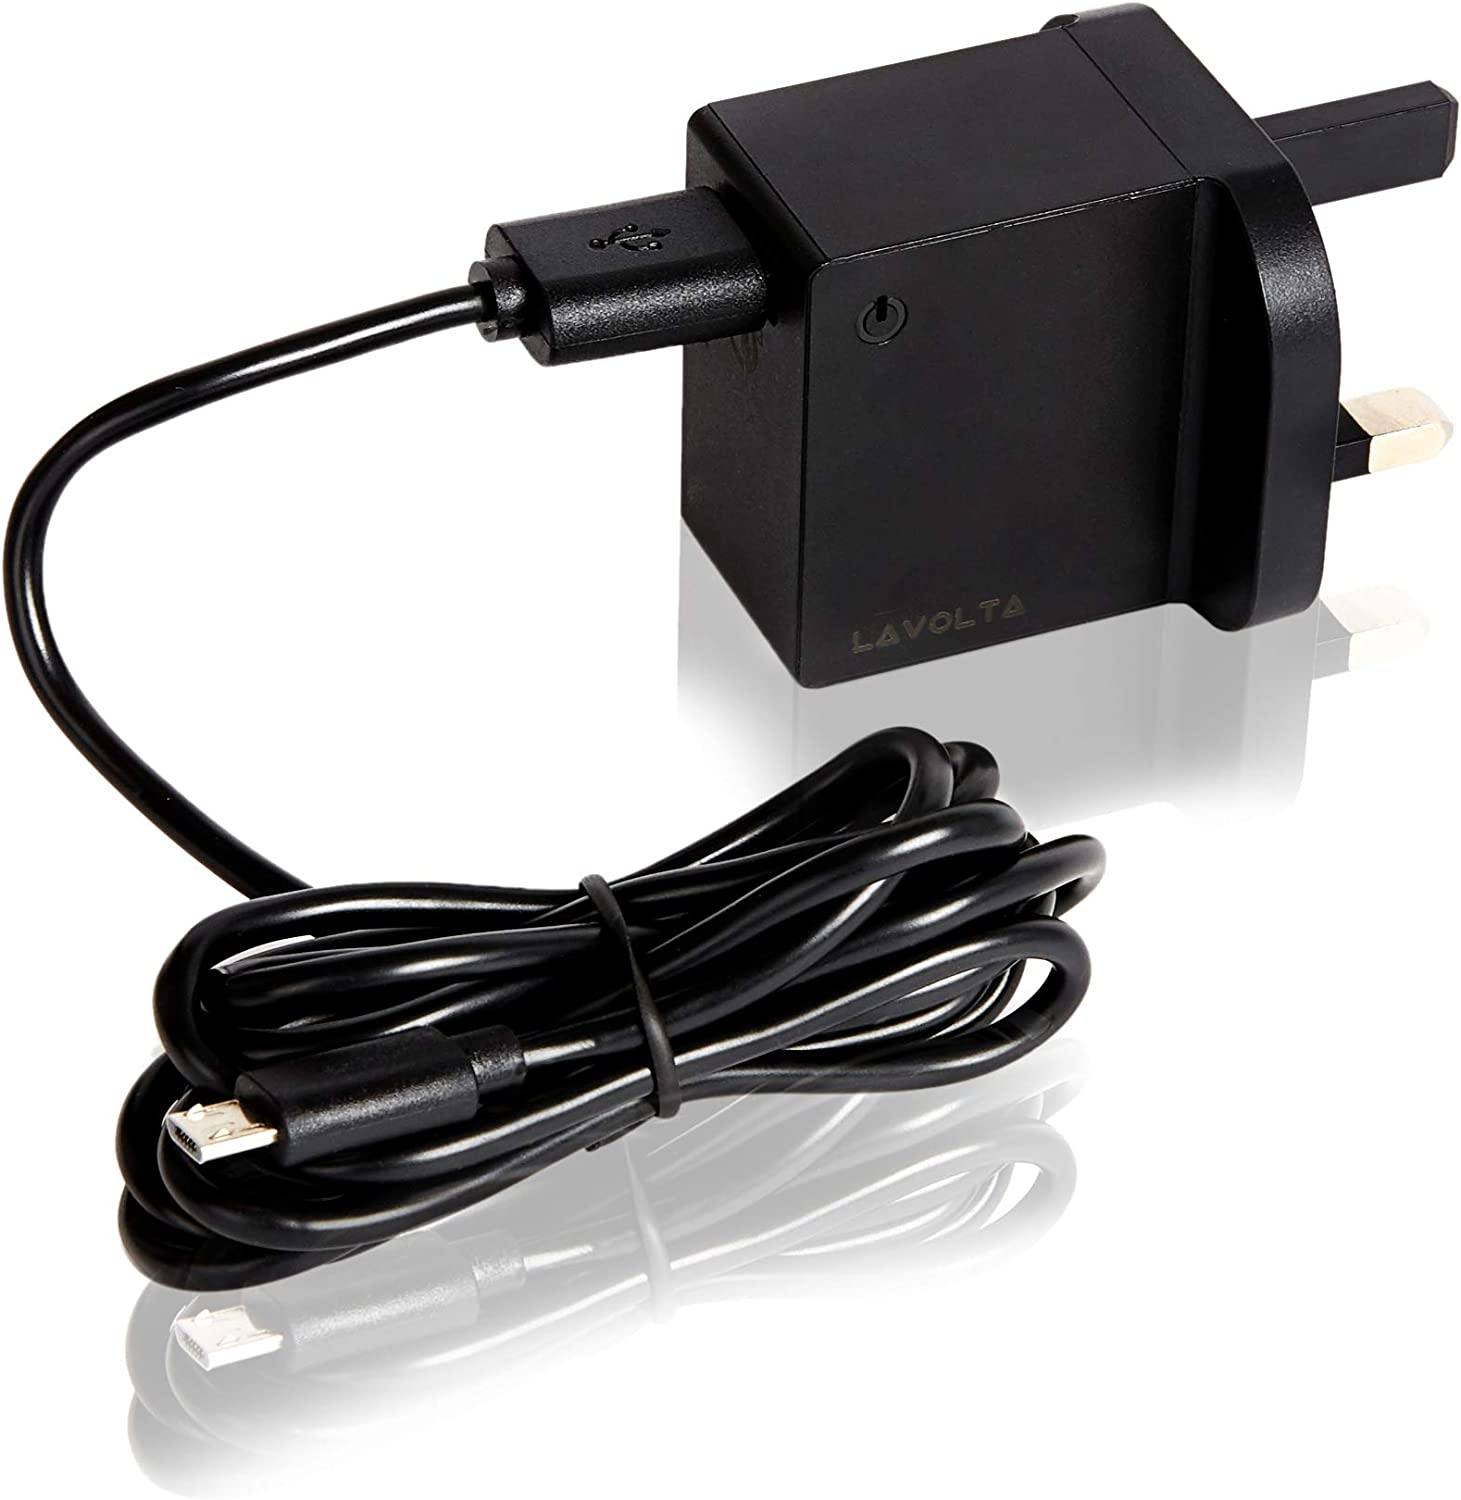 Tablet Power Adapter Charger Cord for ASUS ZenPad 10 Z300M Z300C T100TAF T100TAM